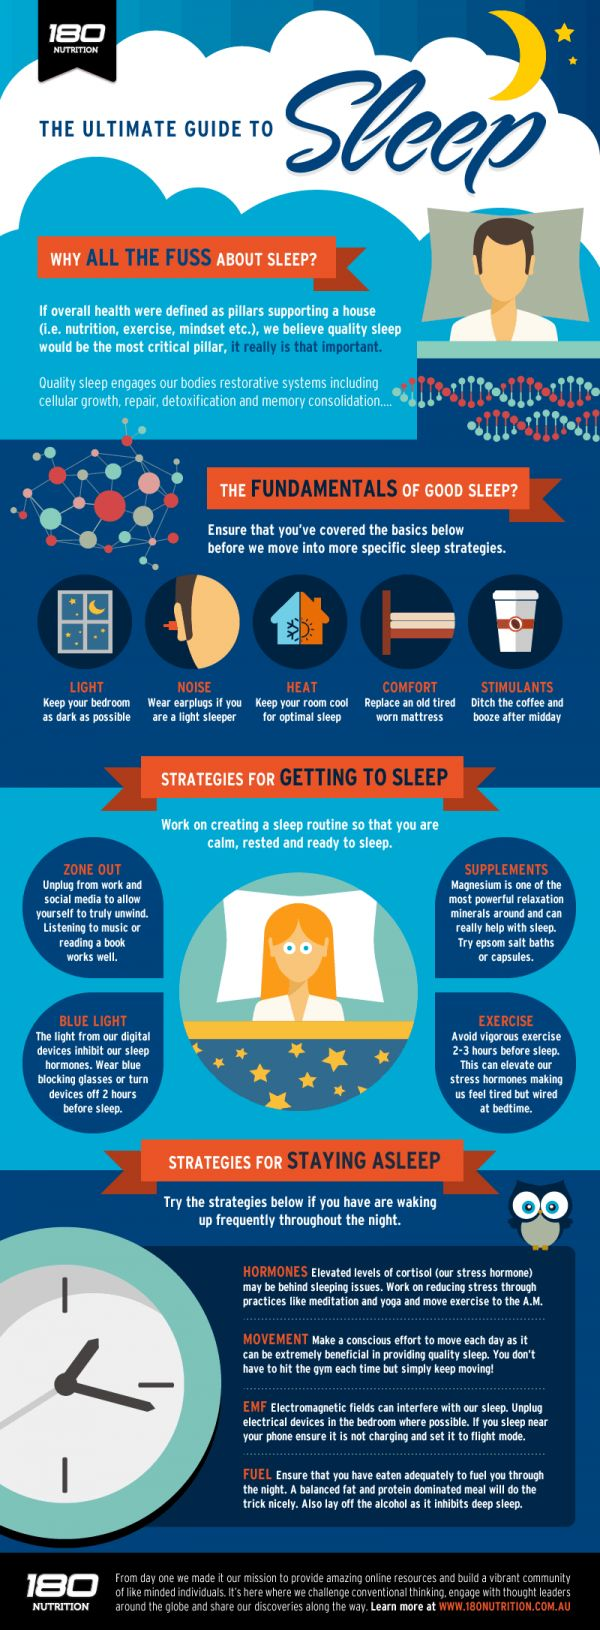 Sleep Awareness Week just wrapped up. That means you, your staff, and your clients are all back on schedule and getting the ideal 7 to 9 hours of sleep each night. In your dreams! In case you're not qutie there, here's a helpful infographic from 180 Nutrition to understand why sleep is so important, what makes a good night's rest, and what you can do to improve your snooze. Check out the National Sleep Foundation's tips for a week of quality sleep.